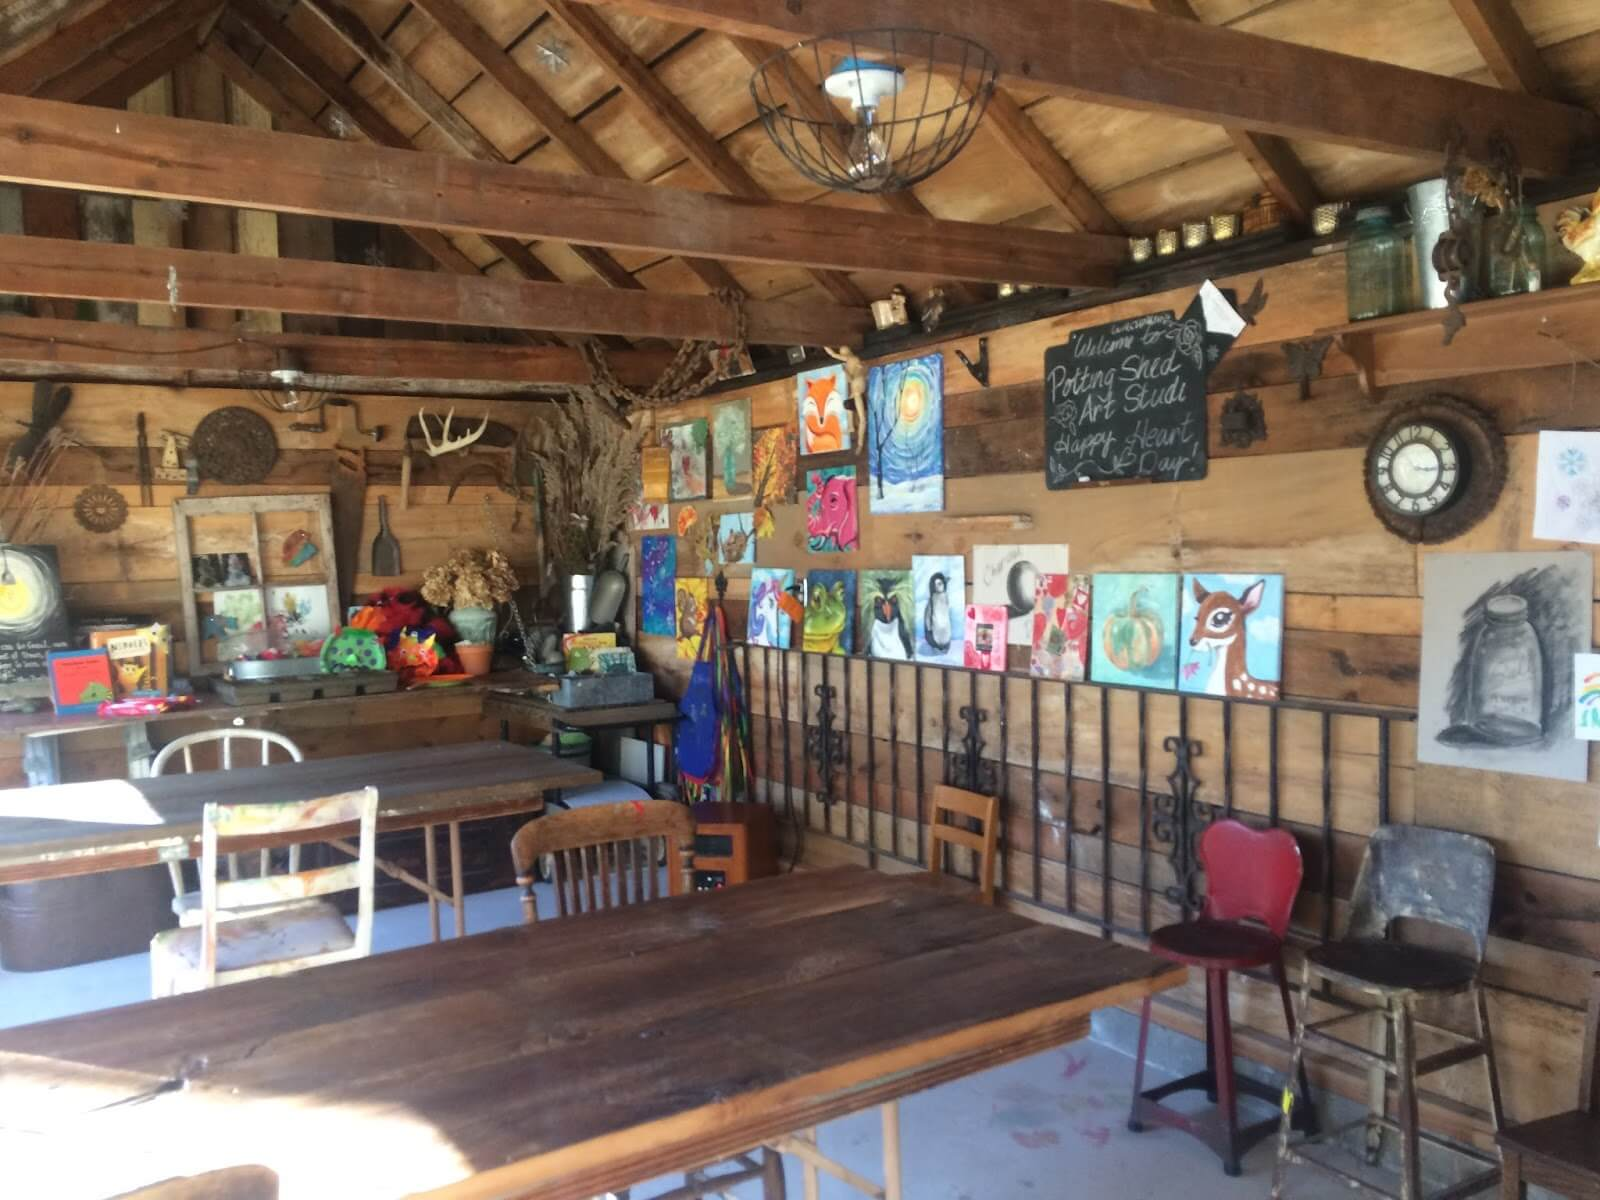 The Potting Shed Art Studio Is An Adorable Little Place It Located At 401 Timberlan Road In Germantown Hills Owner Deb Wiechmann Offers Several